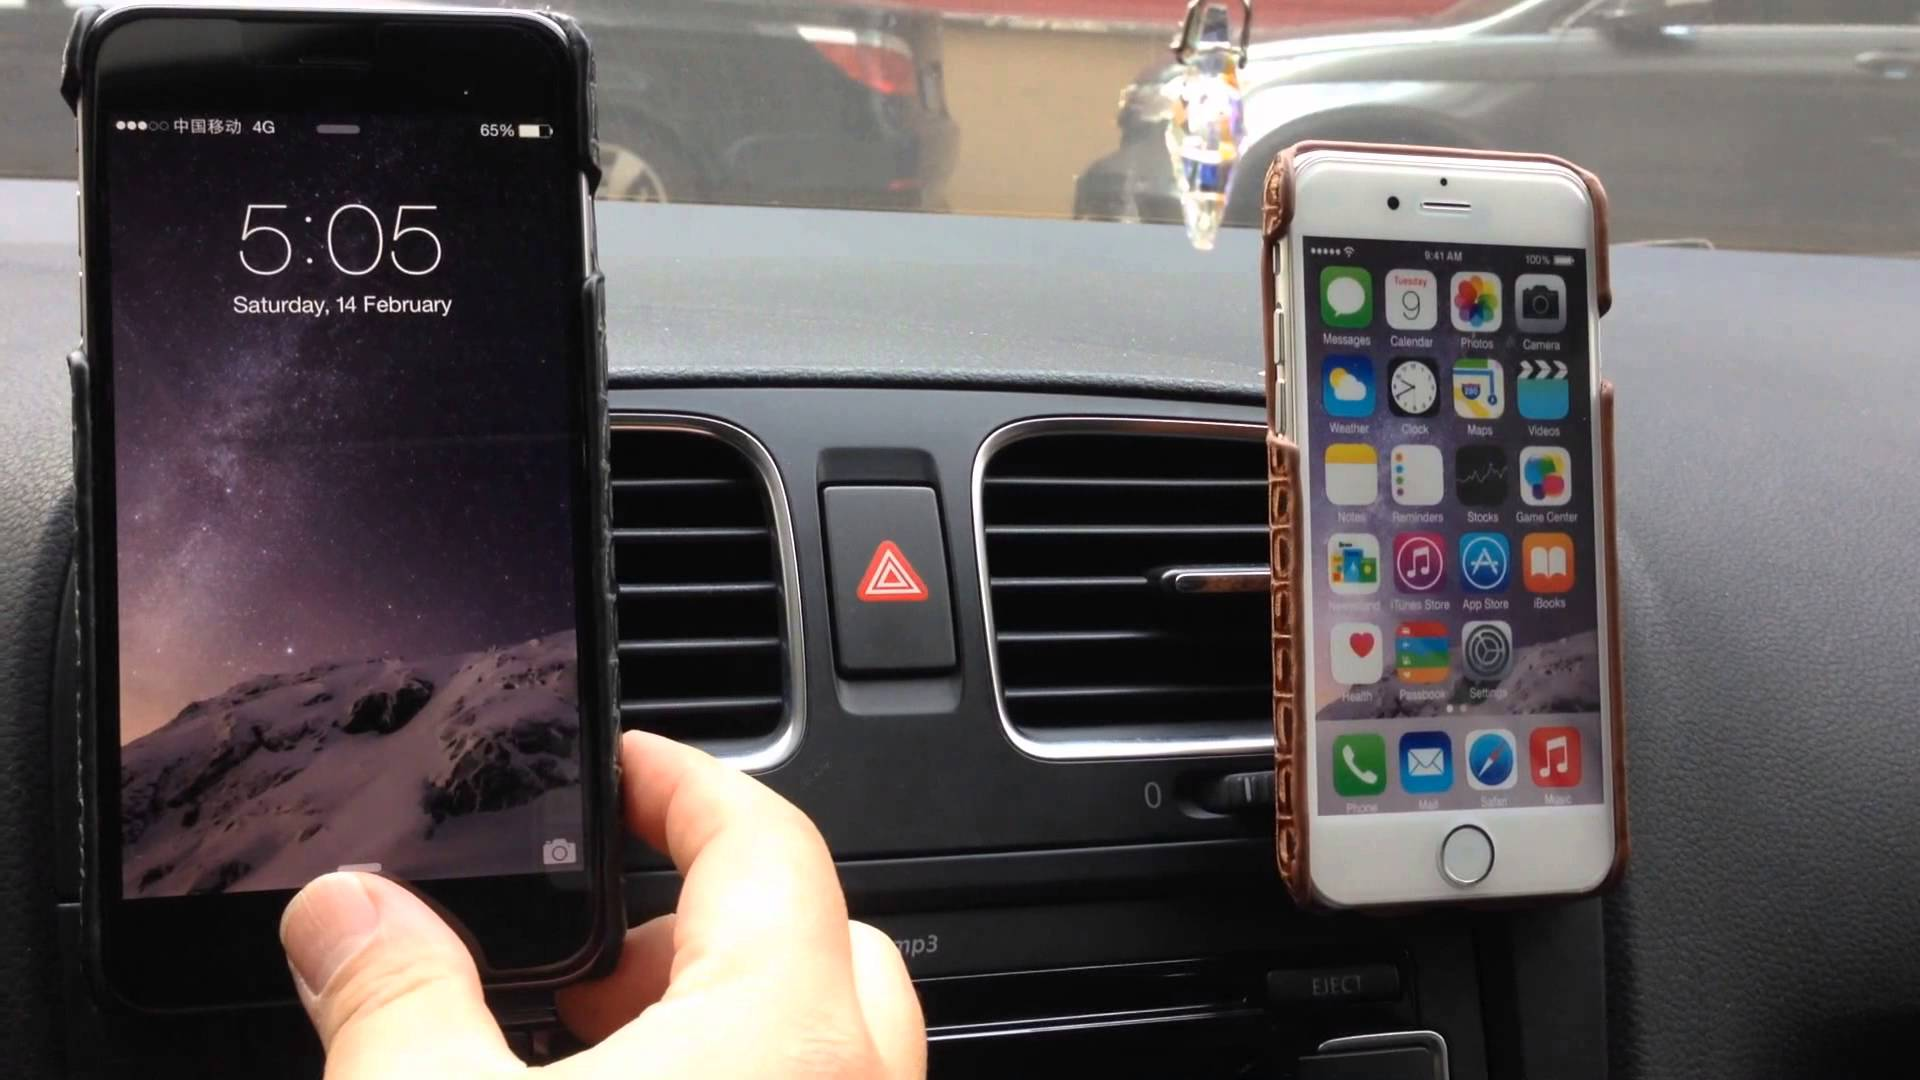 Will the Magnetic mobile holder in the car affect your phone?